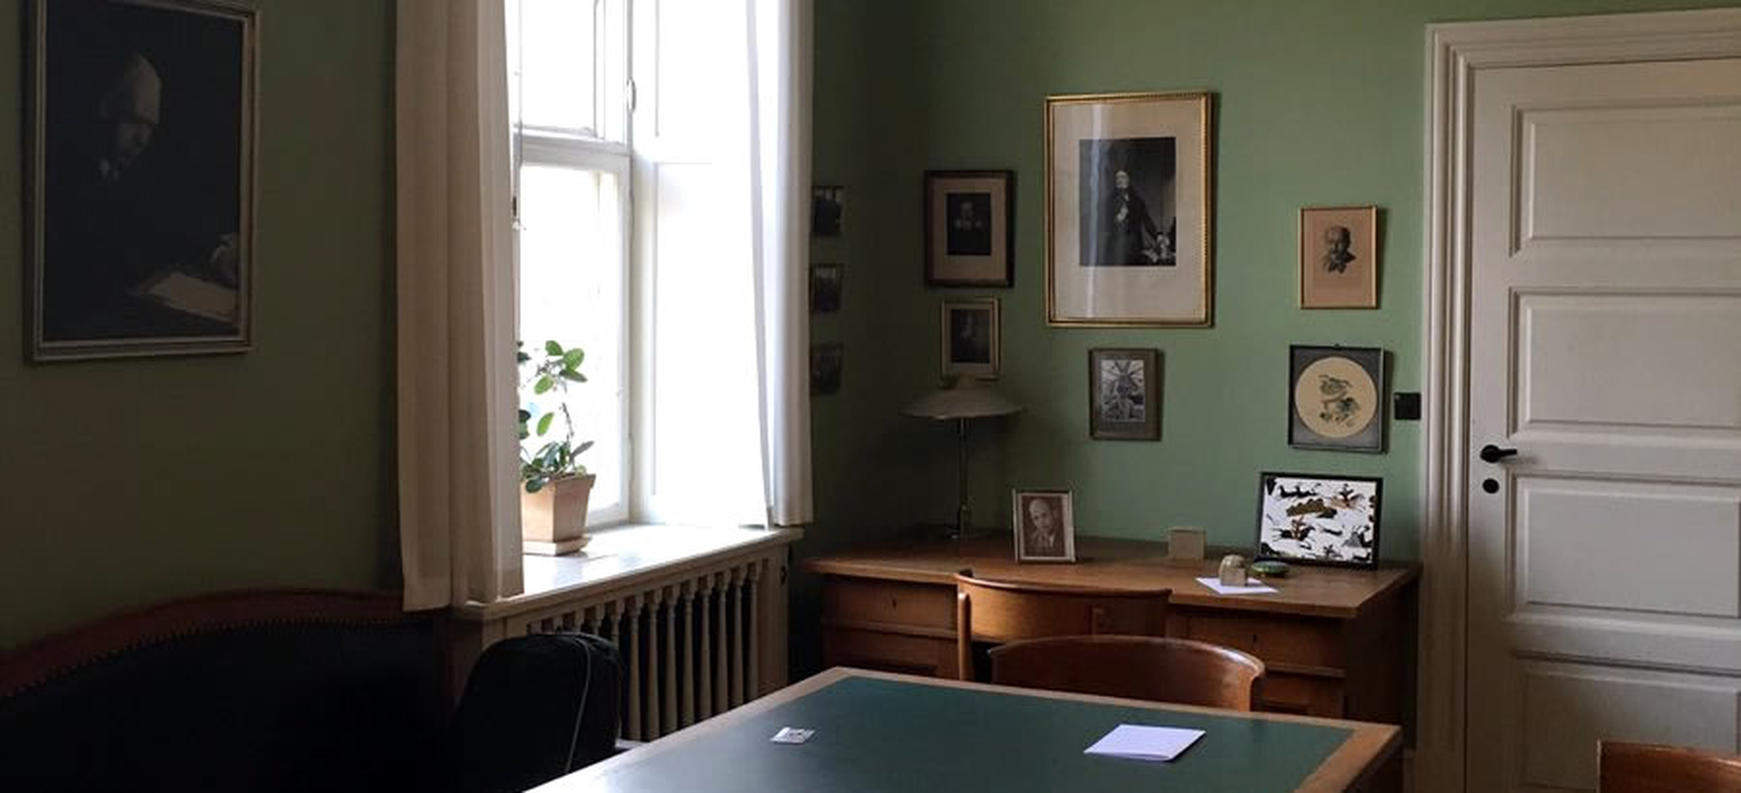 niels bohr's office